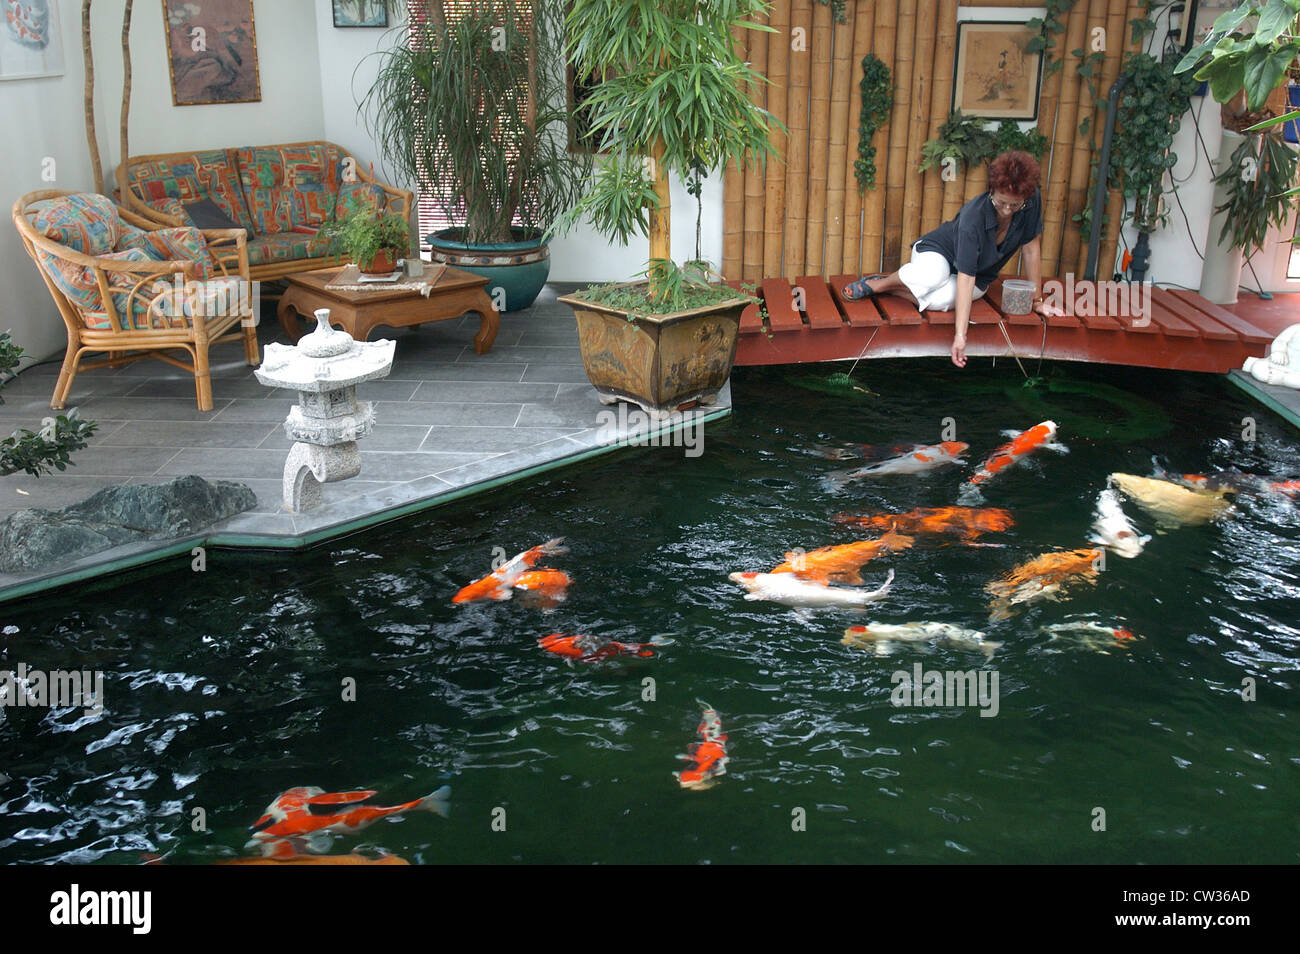 Indoor koi pond in reigoldswil switzerland stock photo for Pet koi fish tank